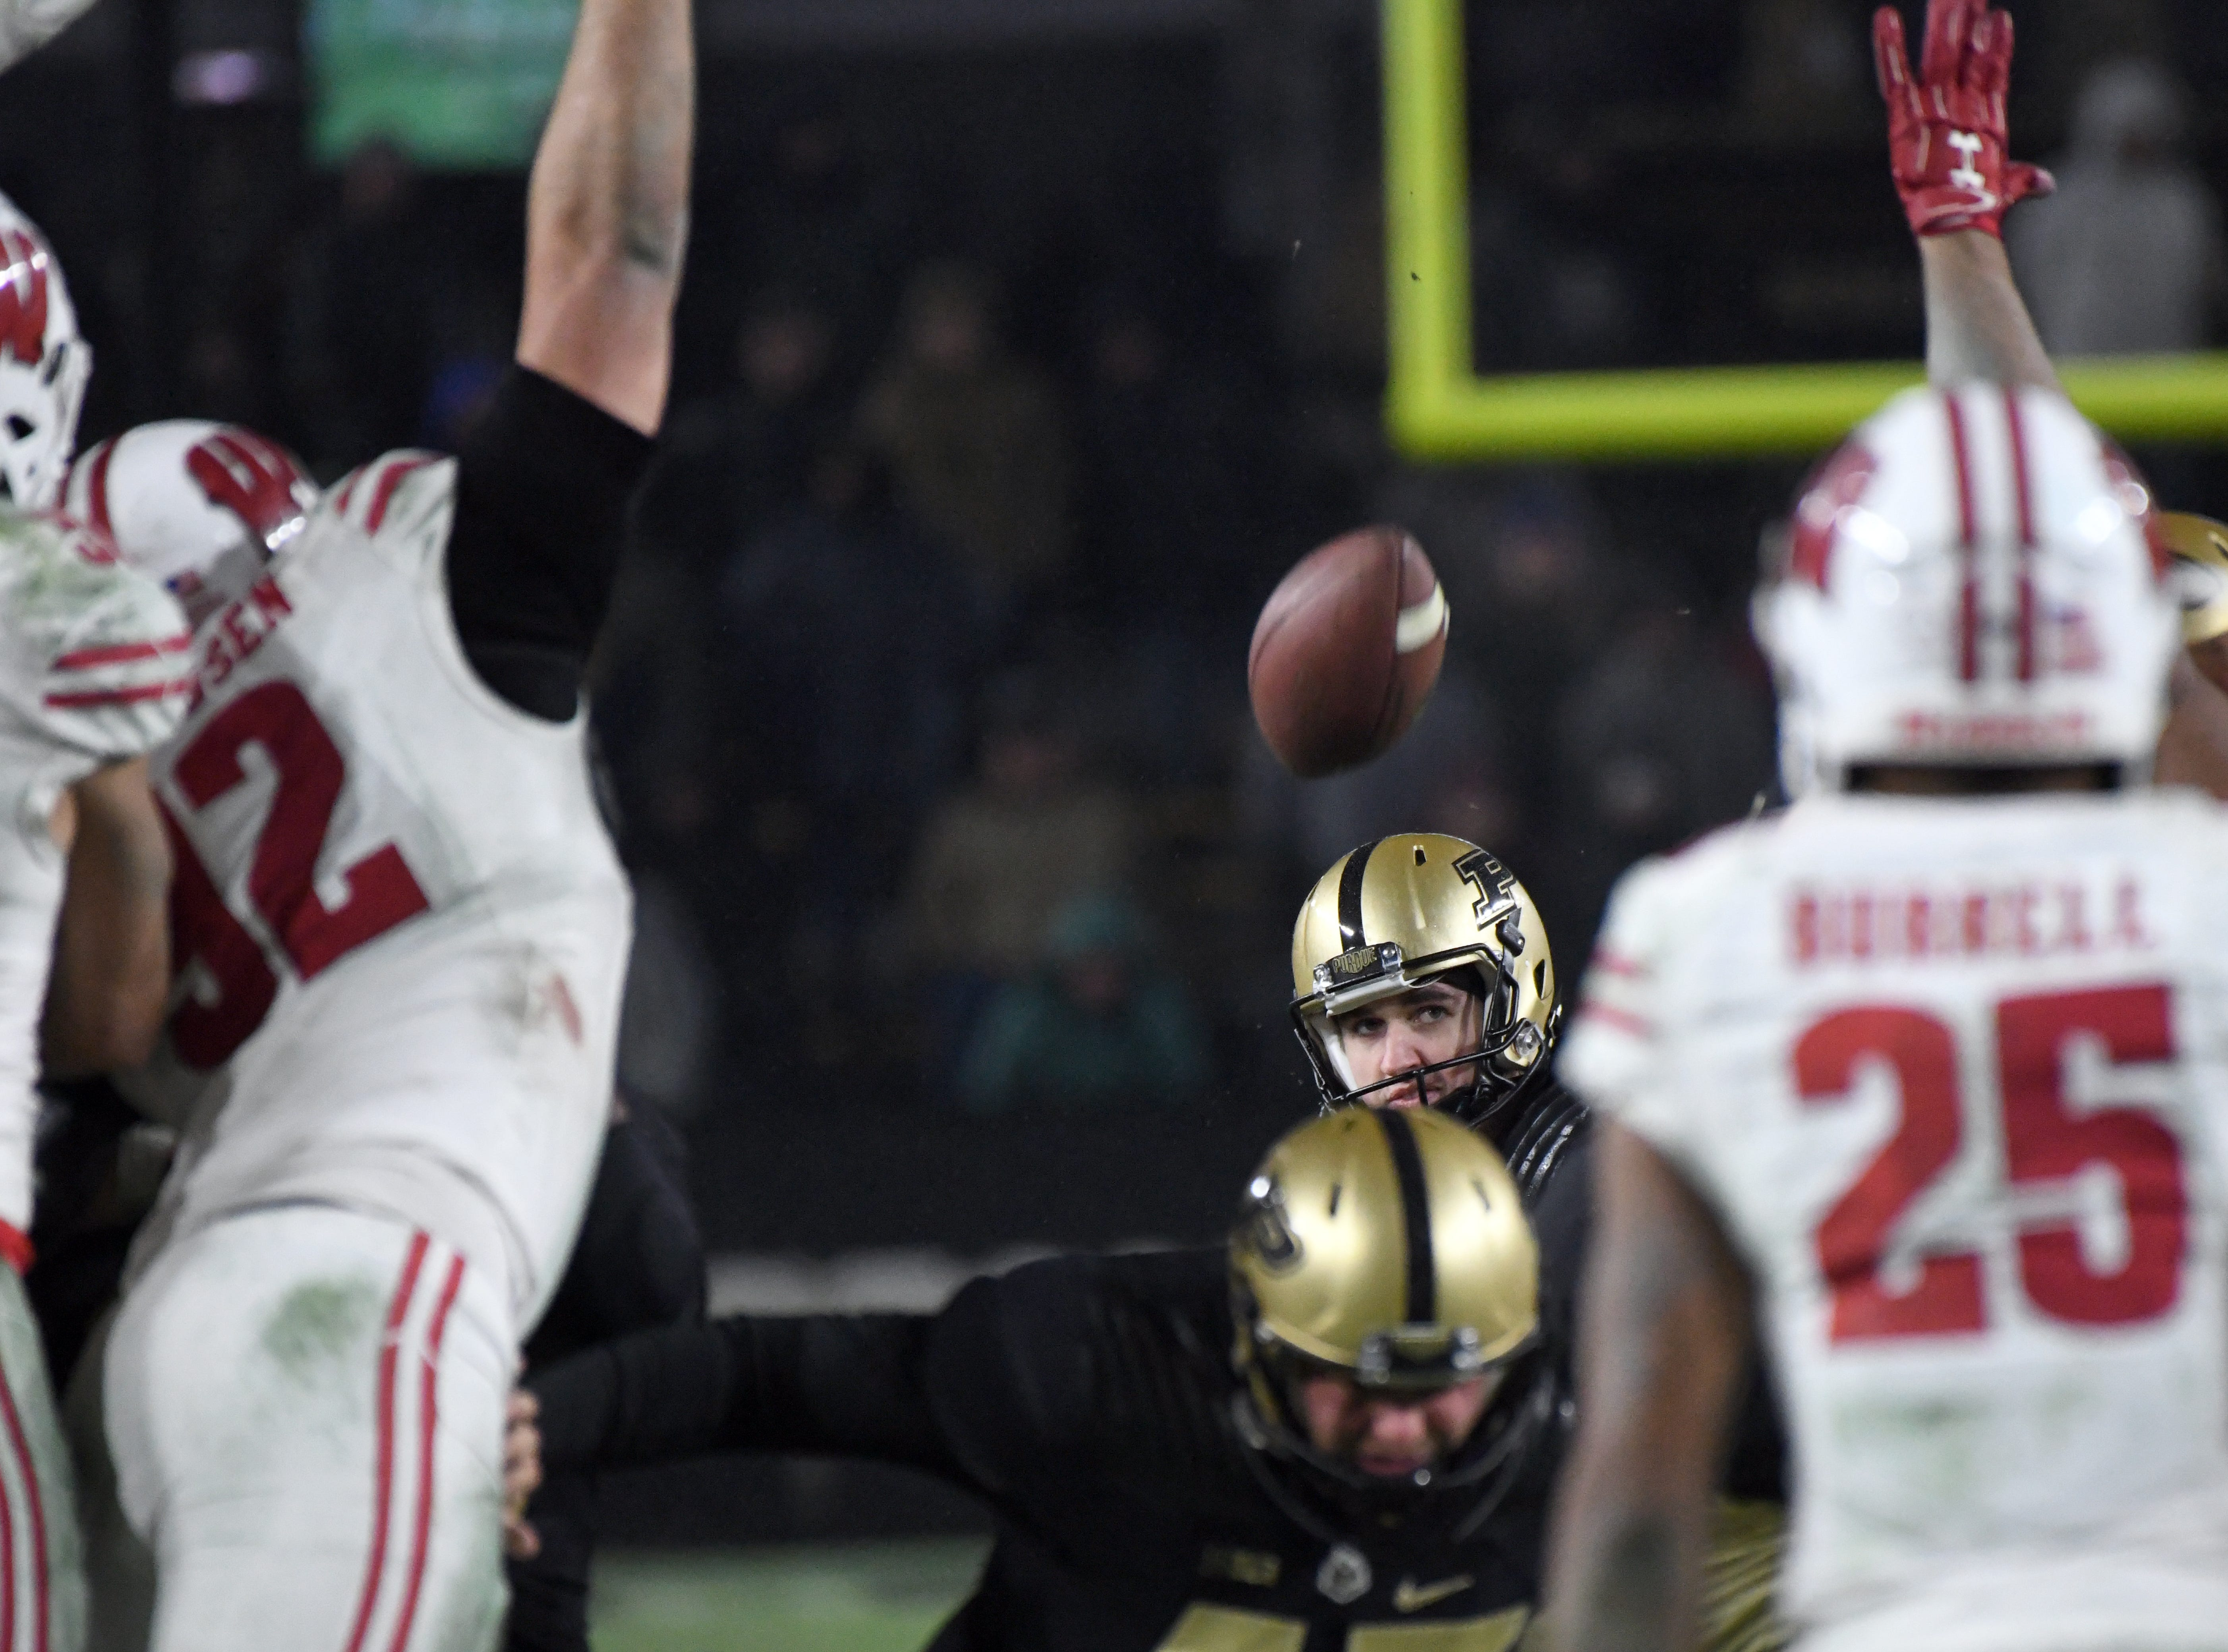 Purdue goes down to defeat on senior day in triple overtime to Wisconsin 47-44 in West Lafayette on Saturday November 17, 2018.